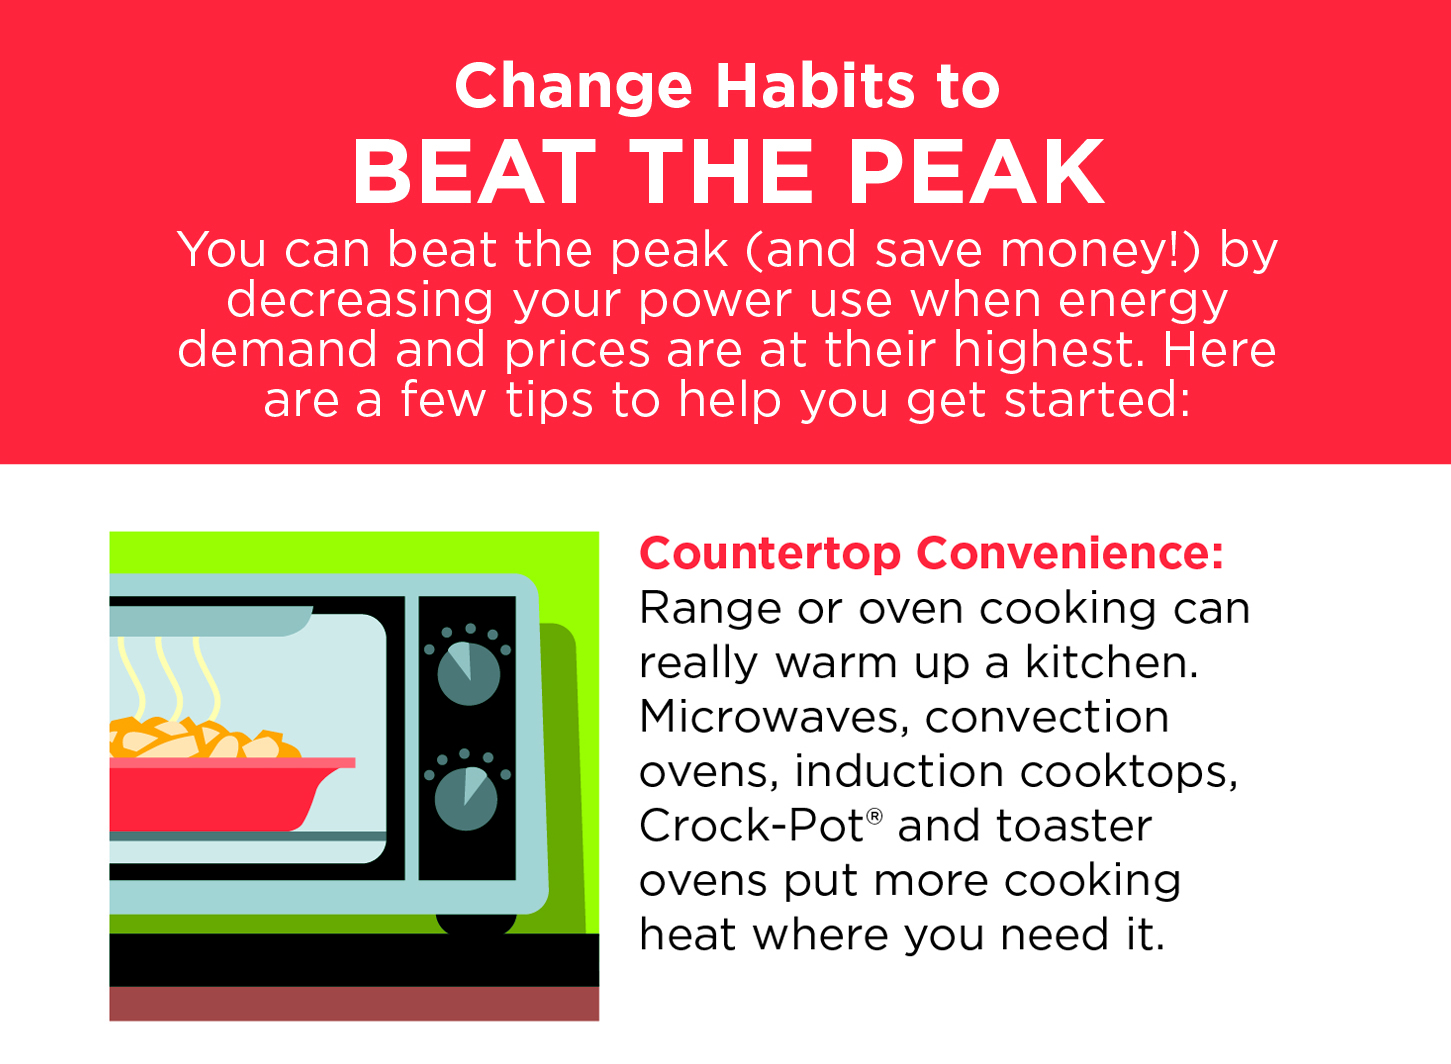 Choose meals that don't contribute heat to your home